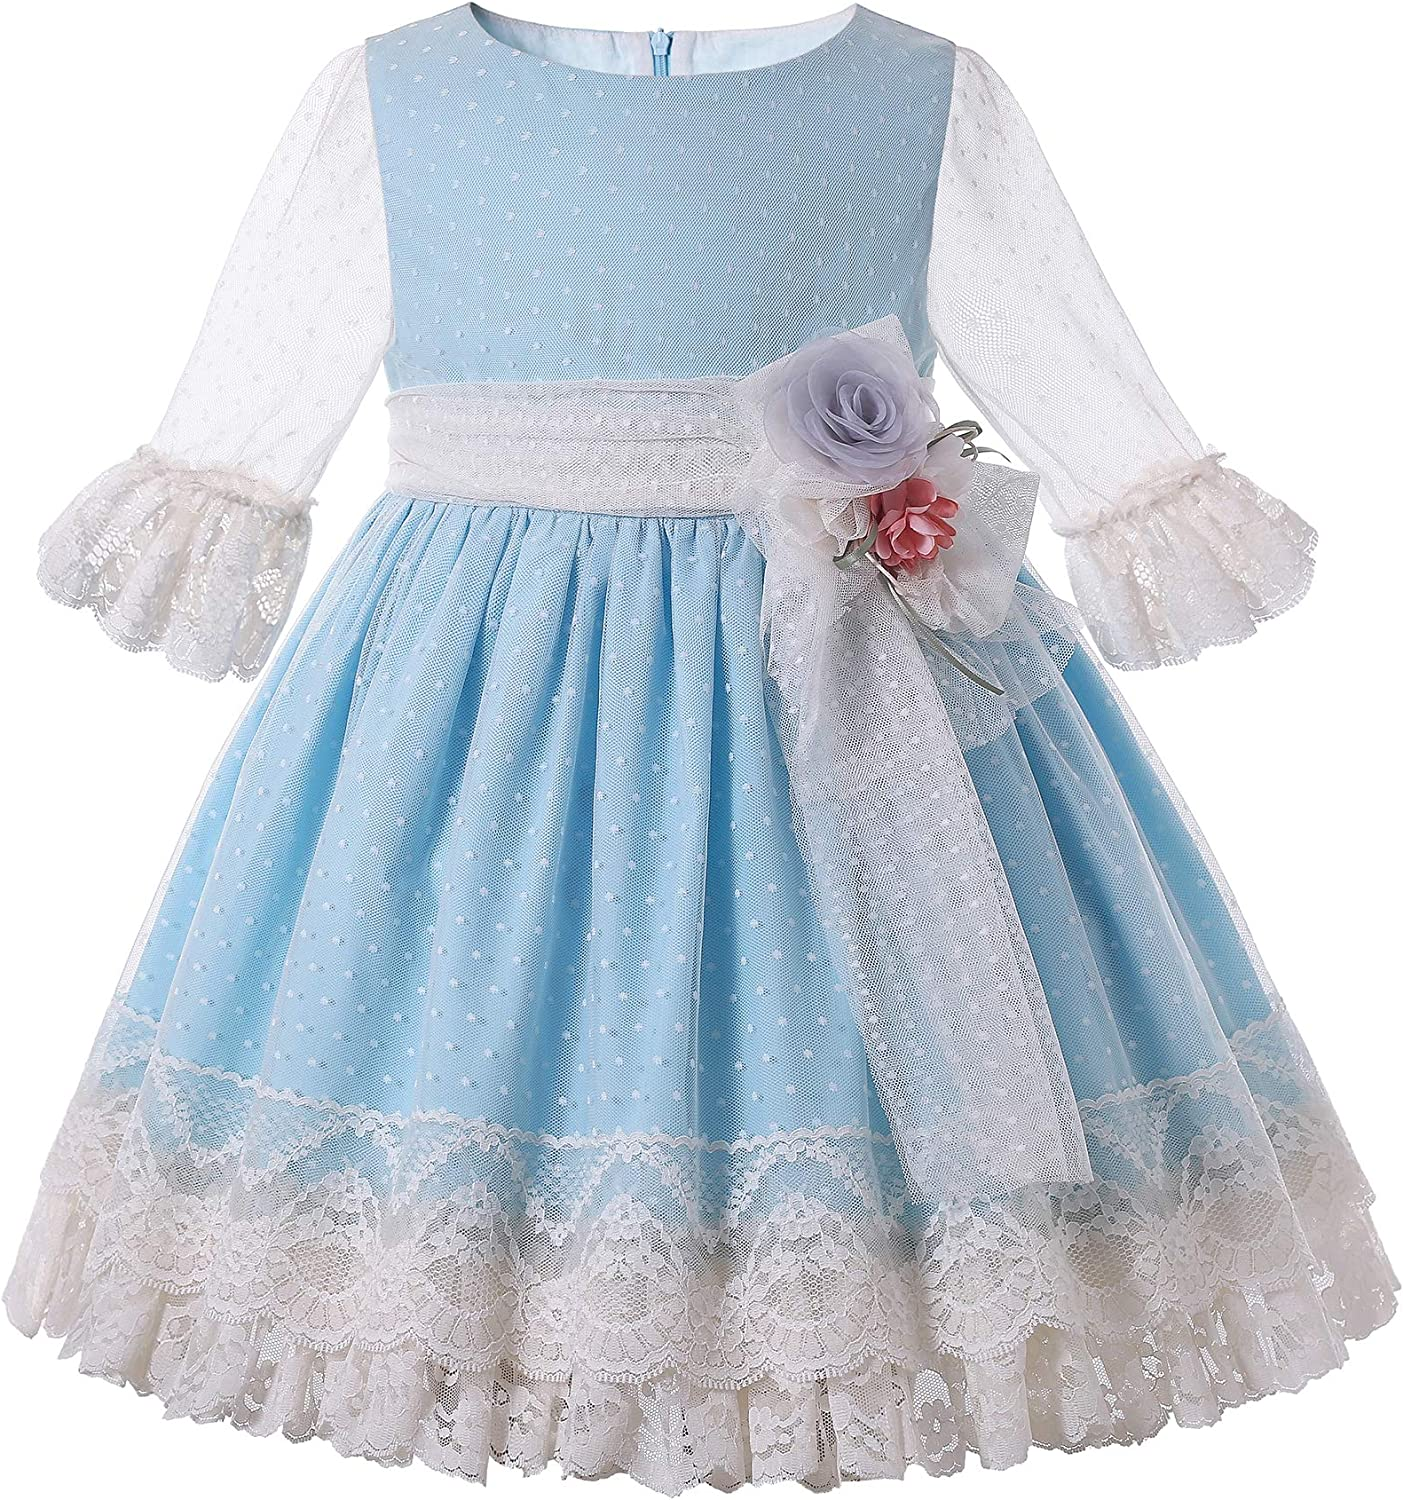 Pettigirl Toddler Girls Spring White Tulle Lace Cute Vintage Blue Clothing Birthday Party Wedding Boutique Dress